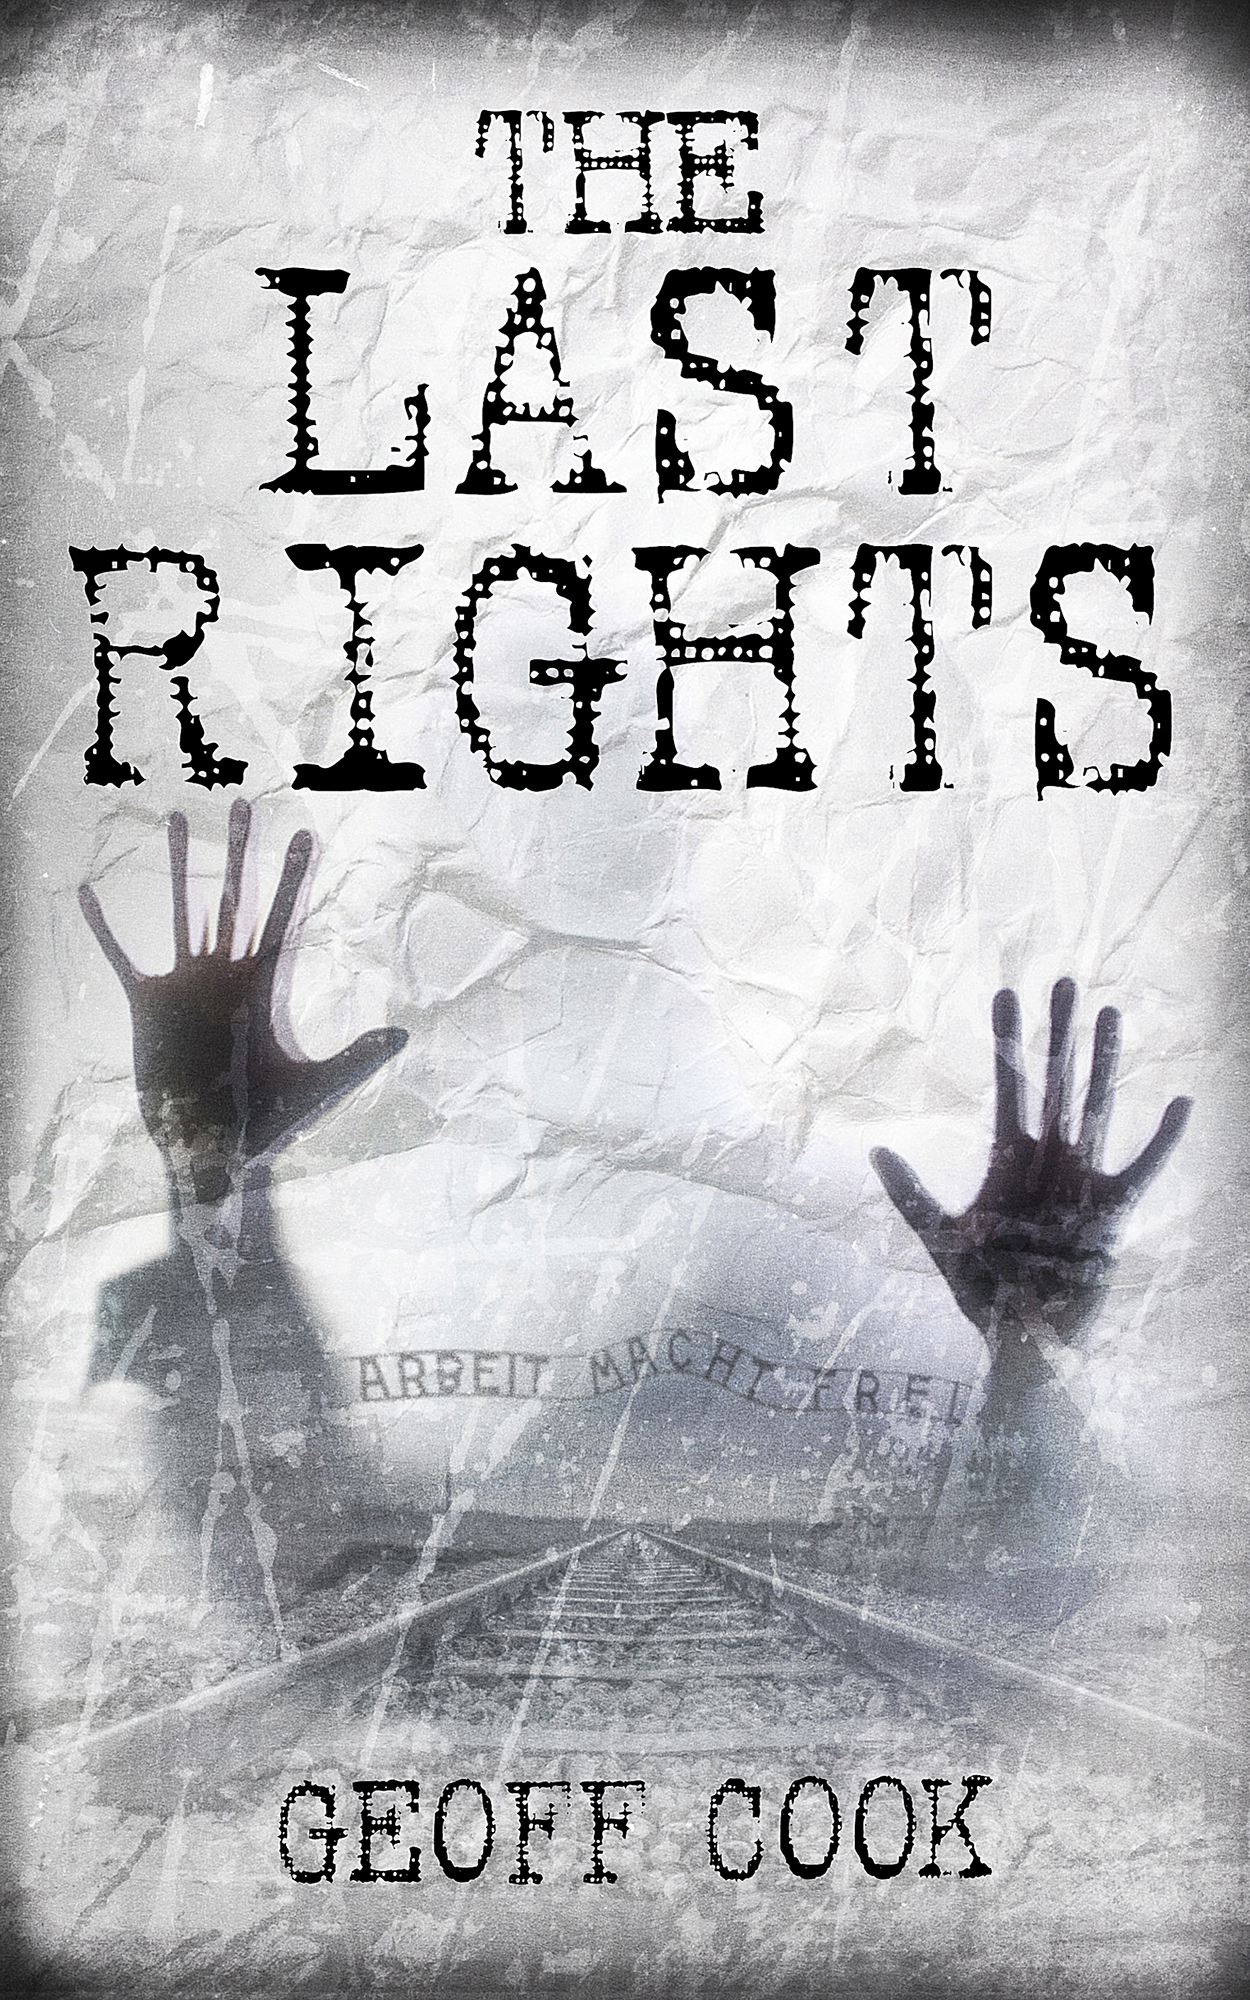 'The Last Rights' latest novel from UK author Geoff Cook is published